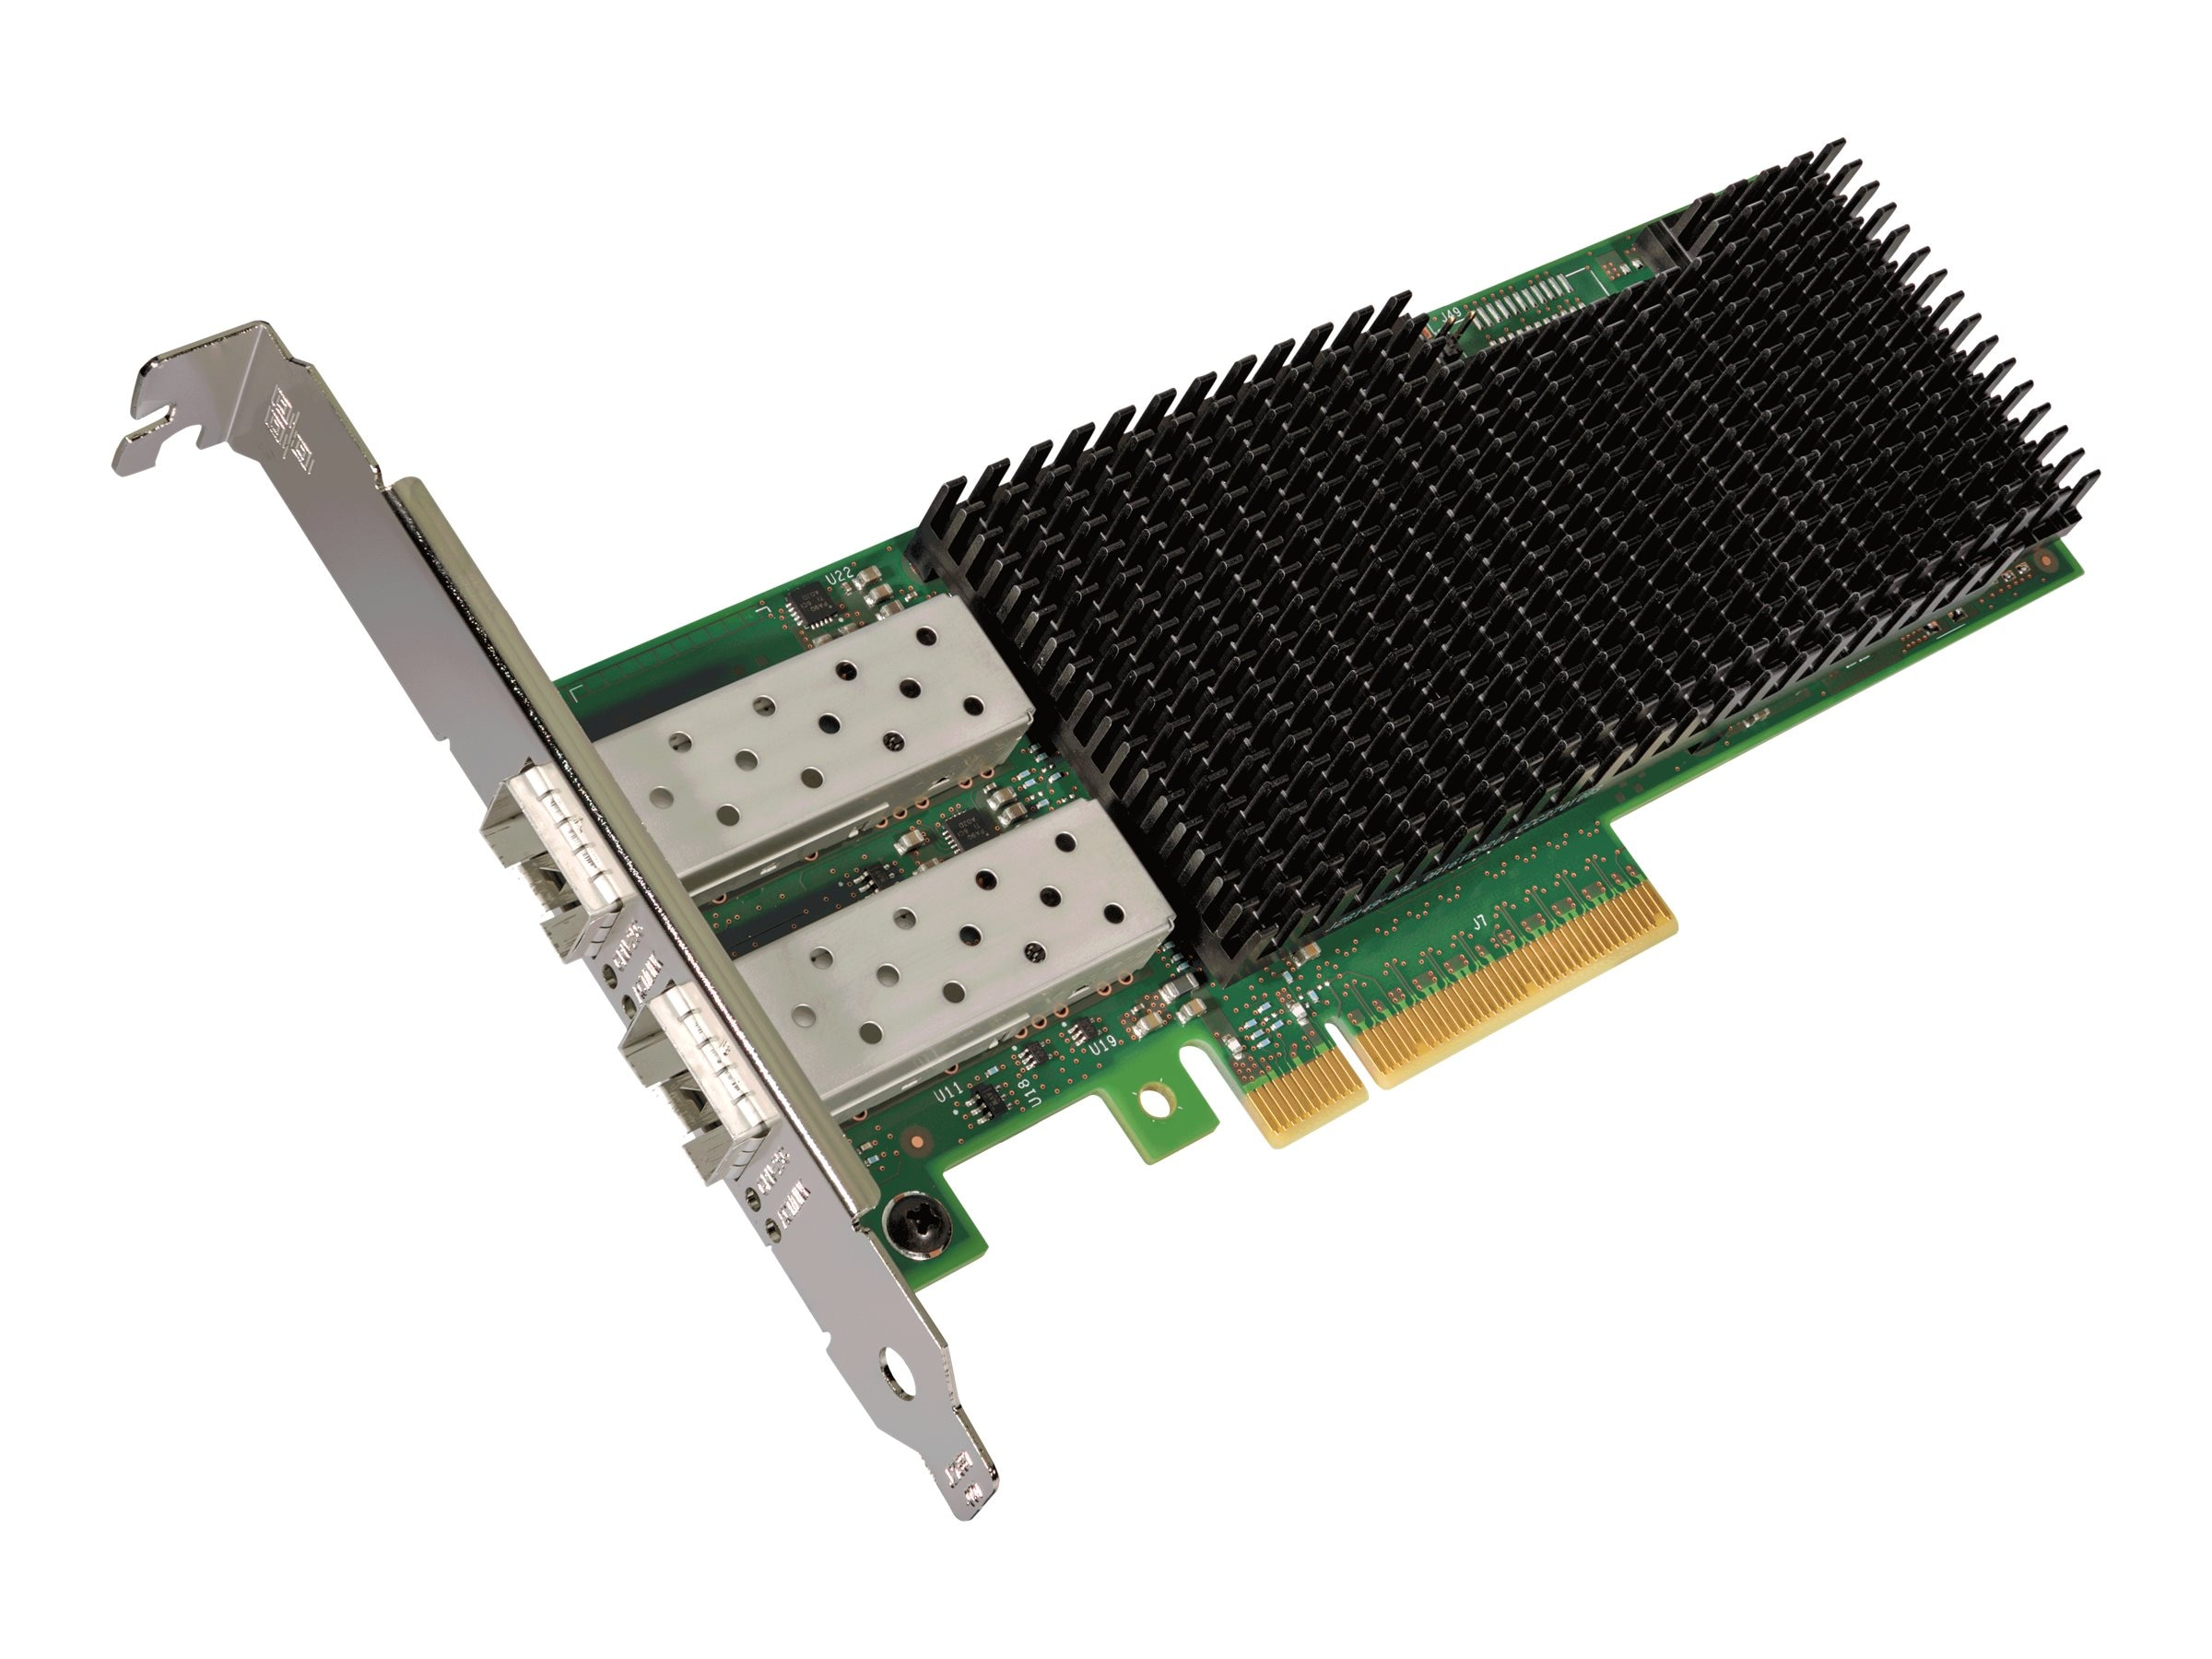 Intel XXV710-DA2 2-Port NIC, XXV710DA2, 33783013, Network Adapters & NICs